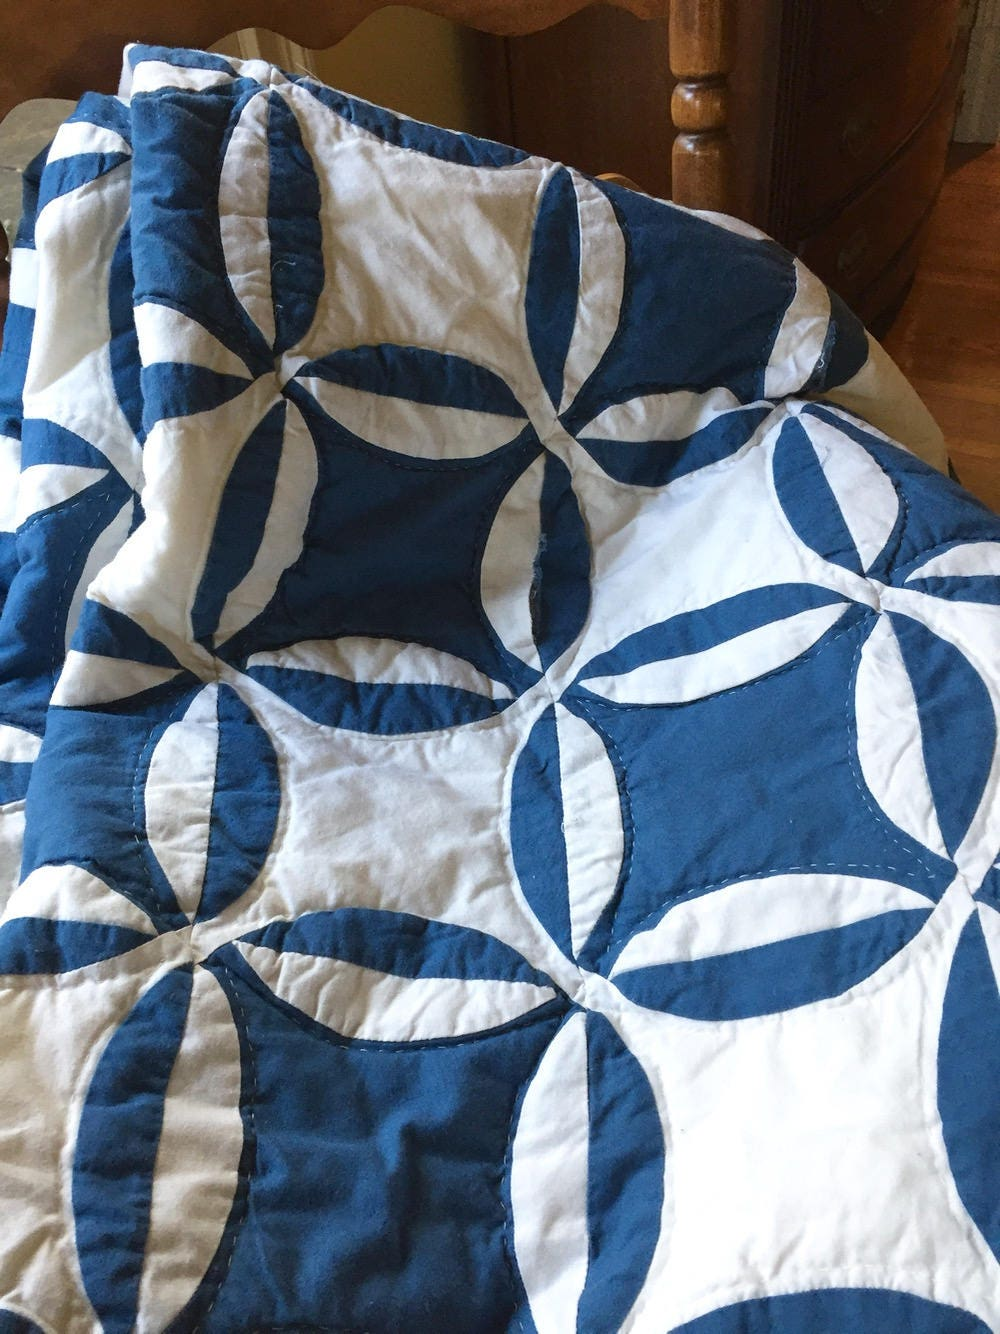 Vintage blue and white quilt coverlet blue white bedding light weight 83 x 94 inches wall decor farmhouse country decor